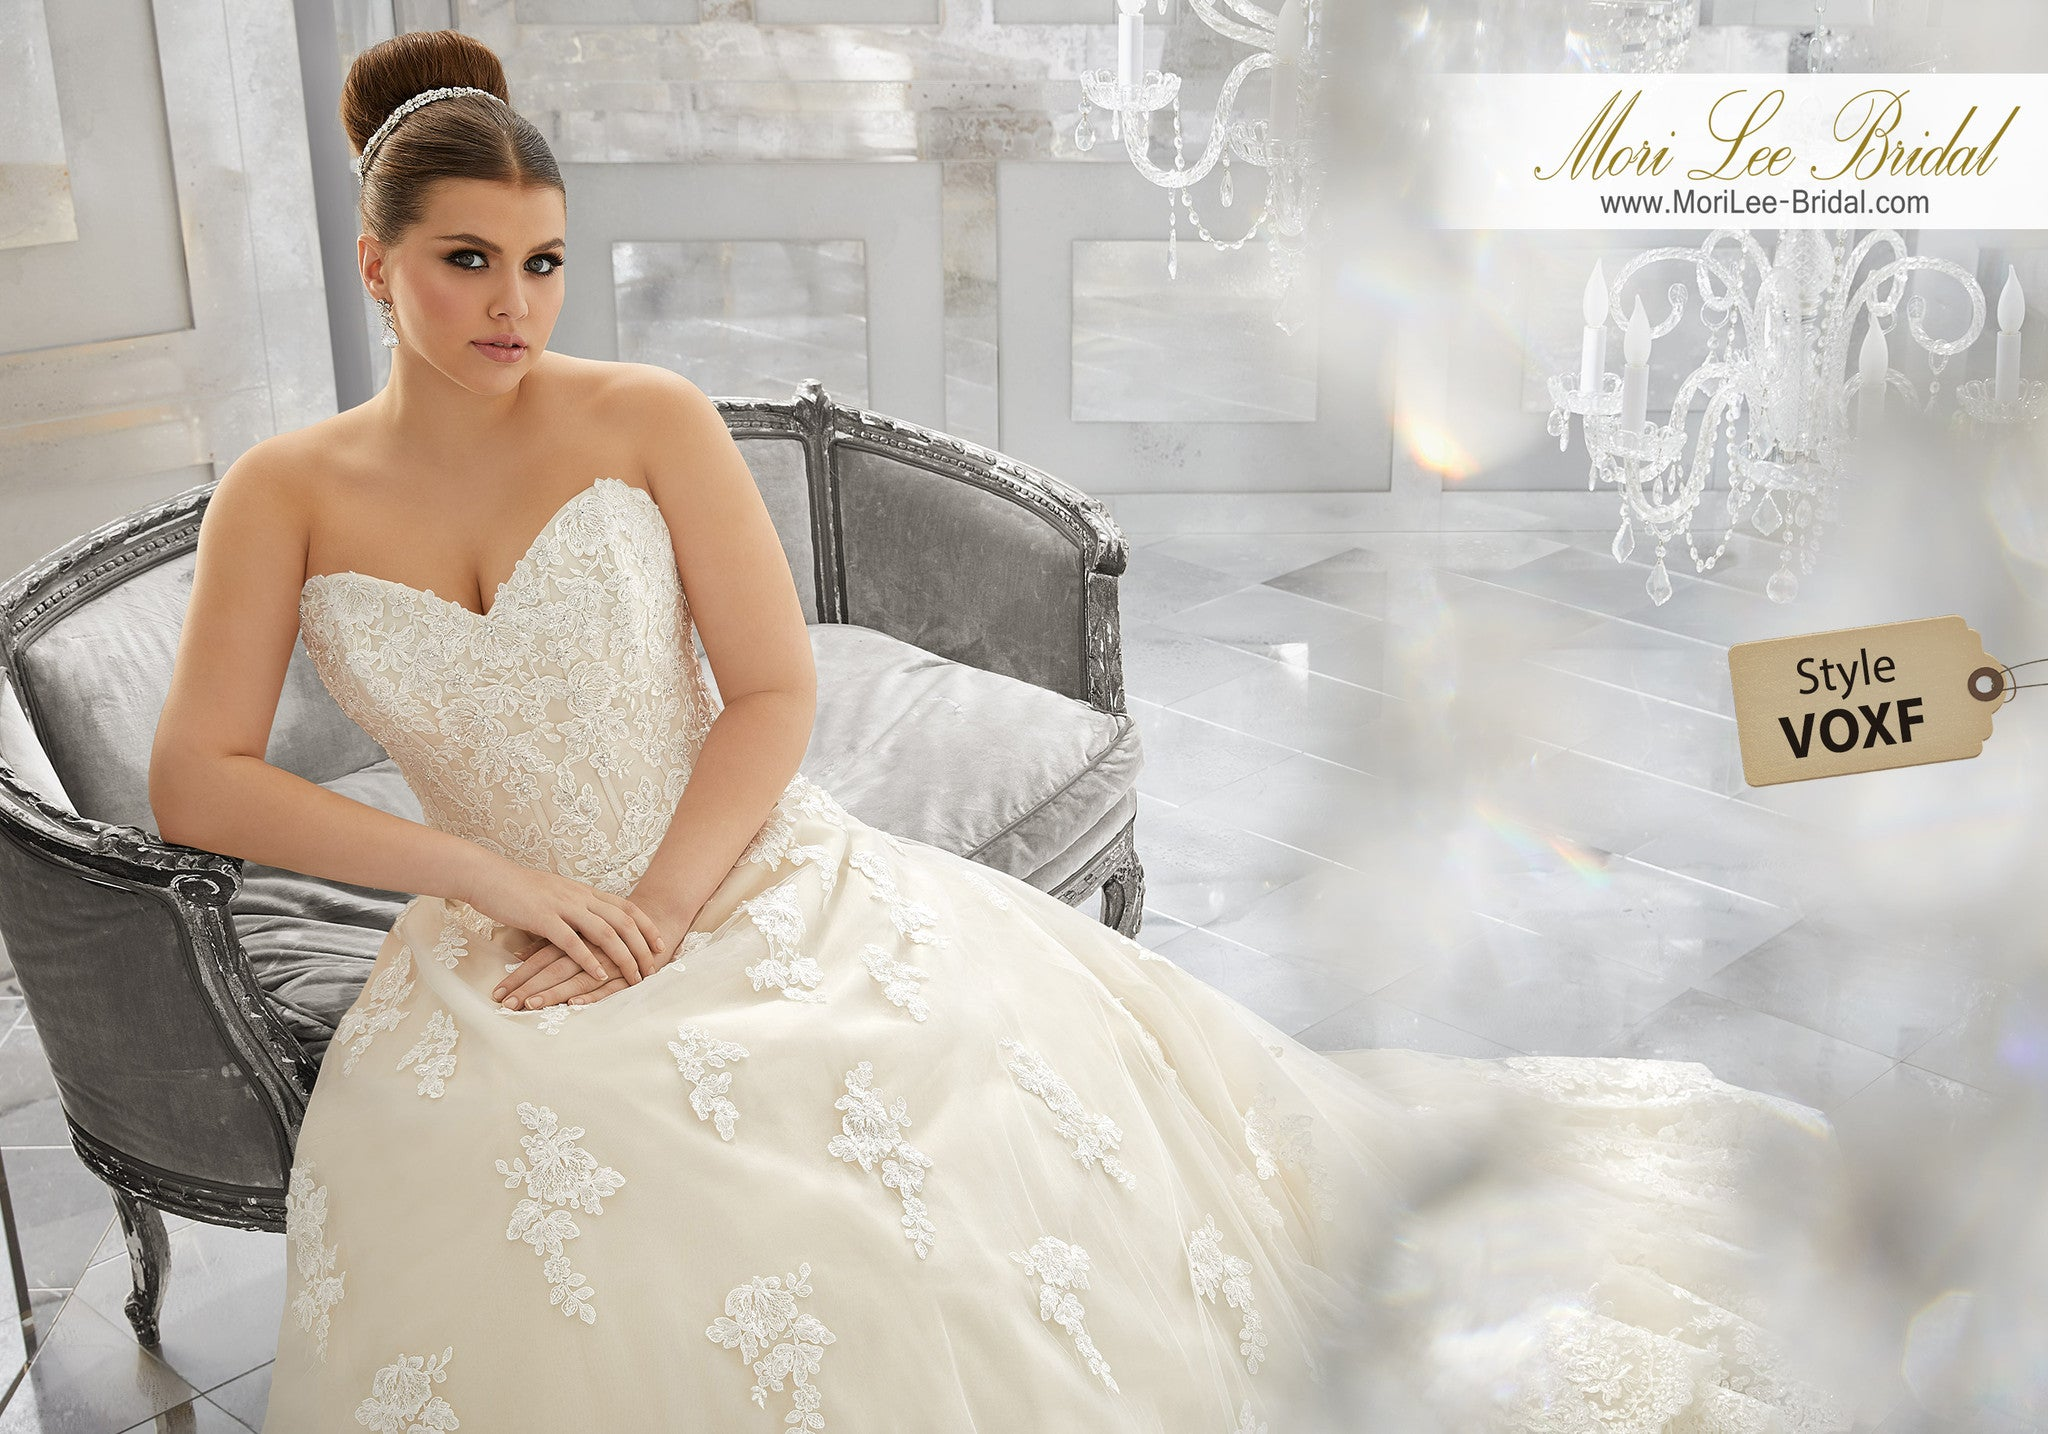 VOXF - Mori Lee Bridal